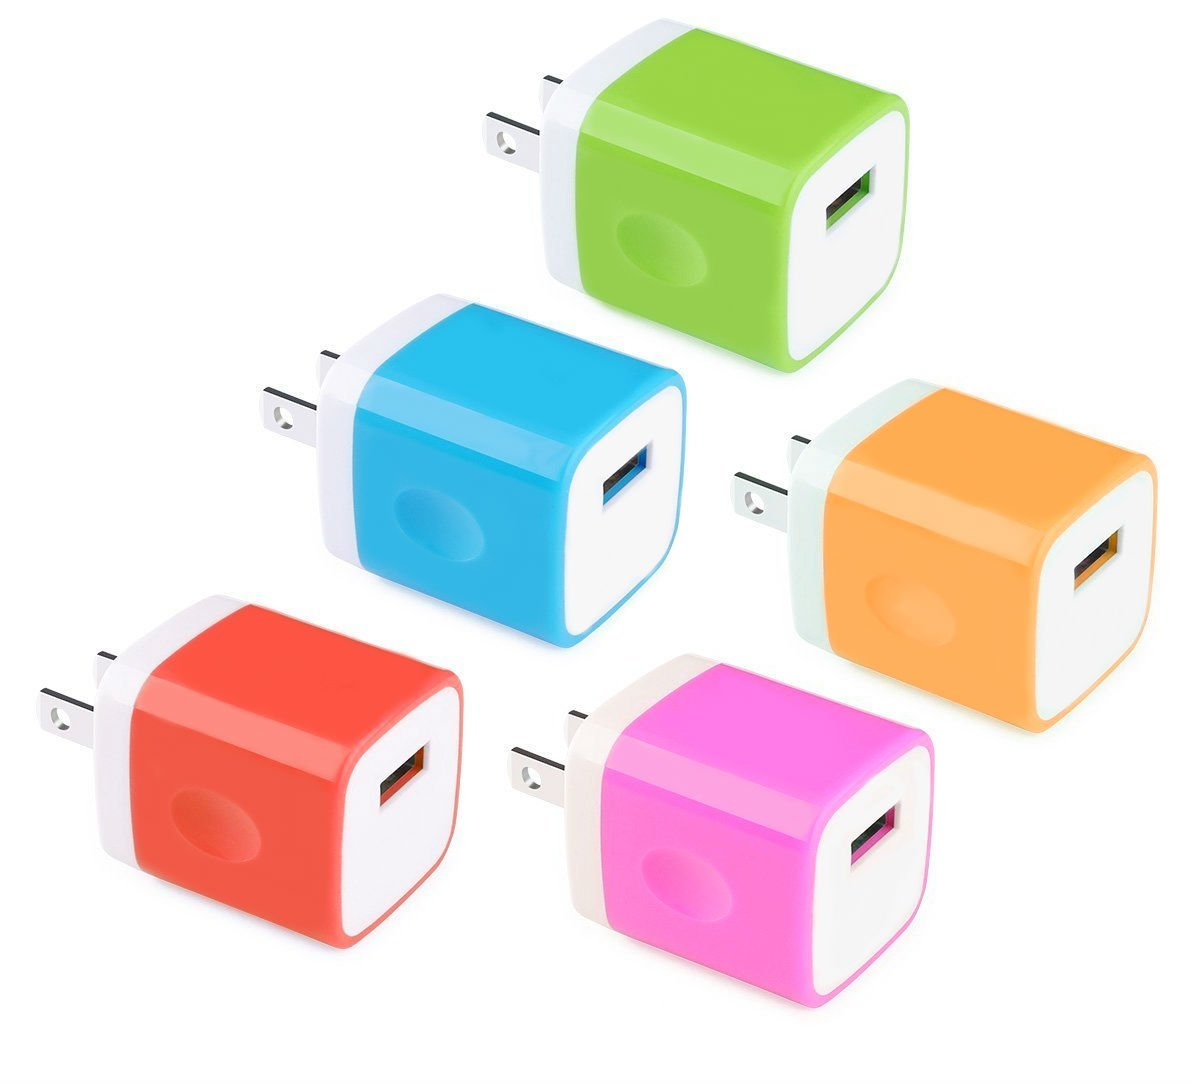 Wall Charger, Universal USB Port Power Portable Adapter AC 5W Home Charger for iPhone 7 SE 6S/6S Plus/6/6 Plus/5S, Samsung, Android, Windows Smart Phone, Power Bank and More USB Devices (5 Pack)